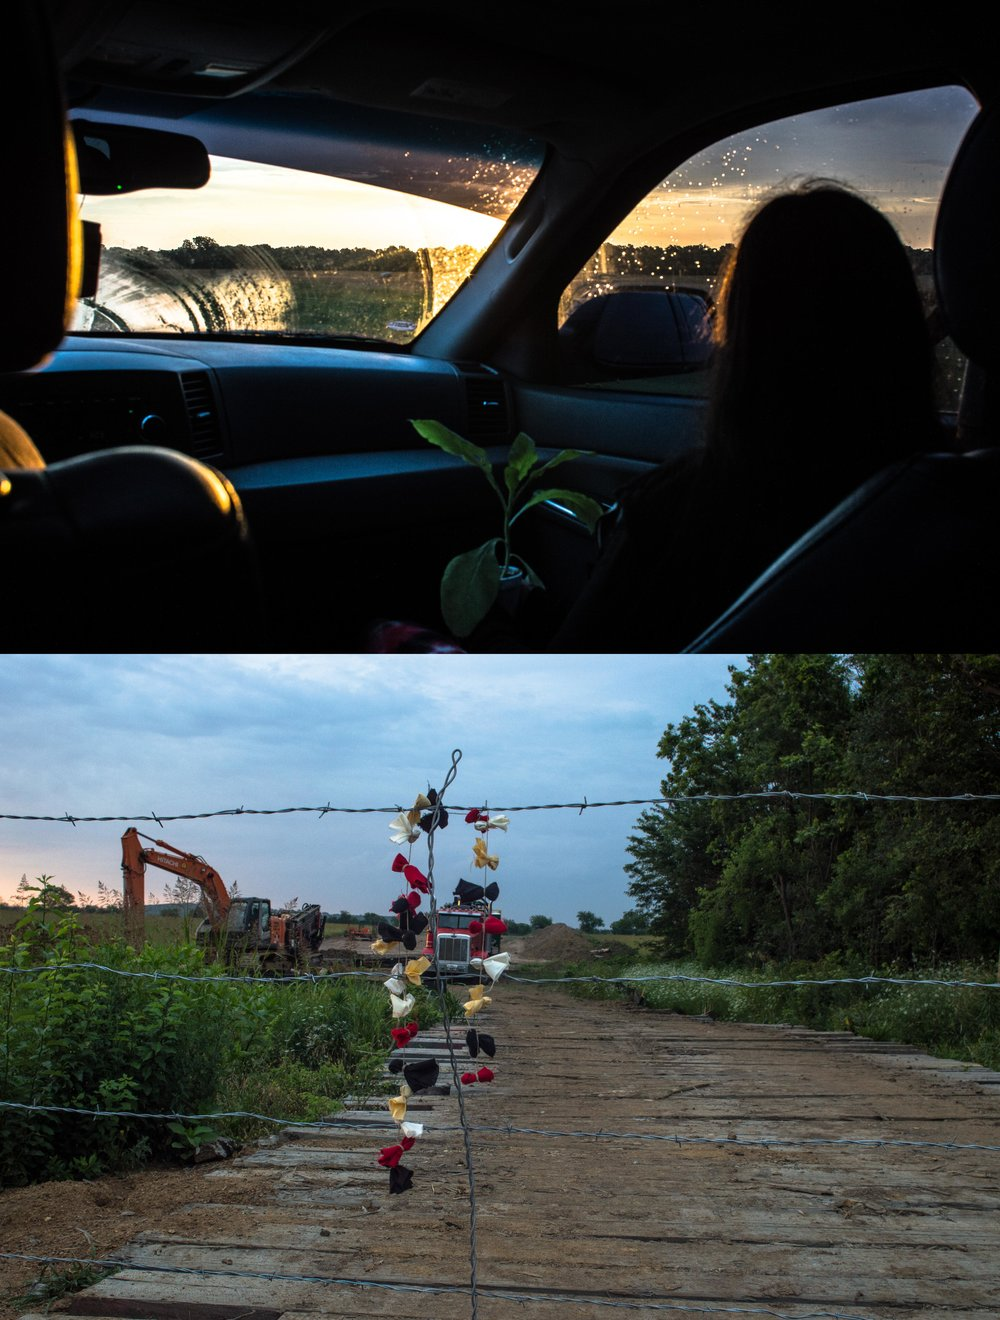 (top) 6:27 A.M. The location had been scouted in the weeks before.  Somewhere near Checotah, Oklahoma.    (bottom) 6:33 A.M. Prayer ties are hung on the entrance gate.